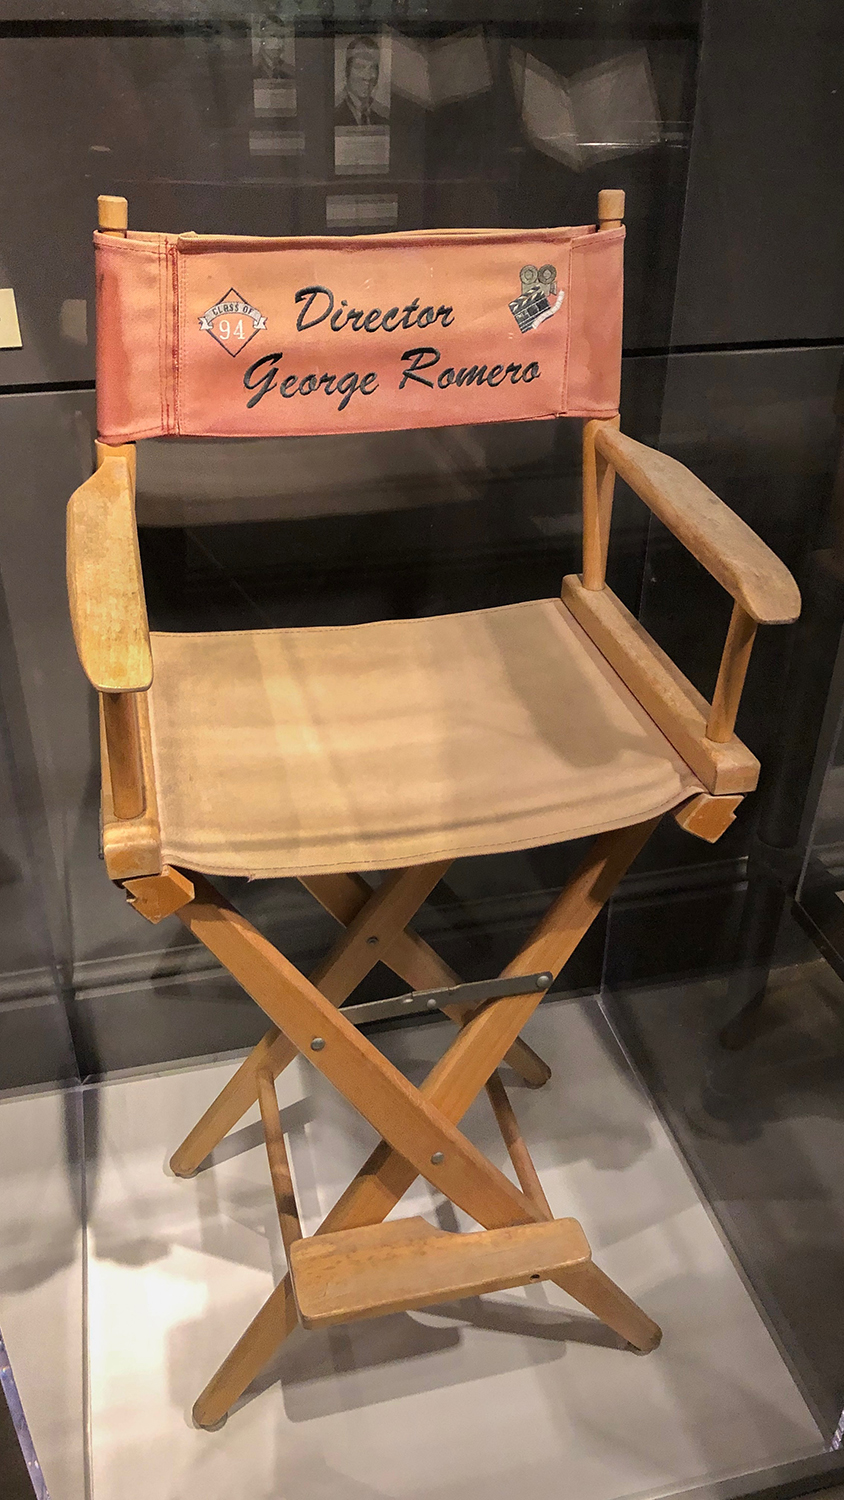 George Romero's director chair, on display in Pittsburgh: A Tradition of Innovation.